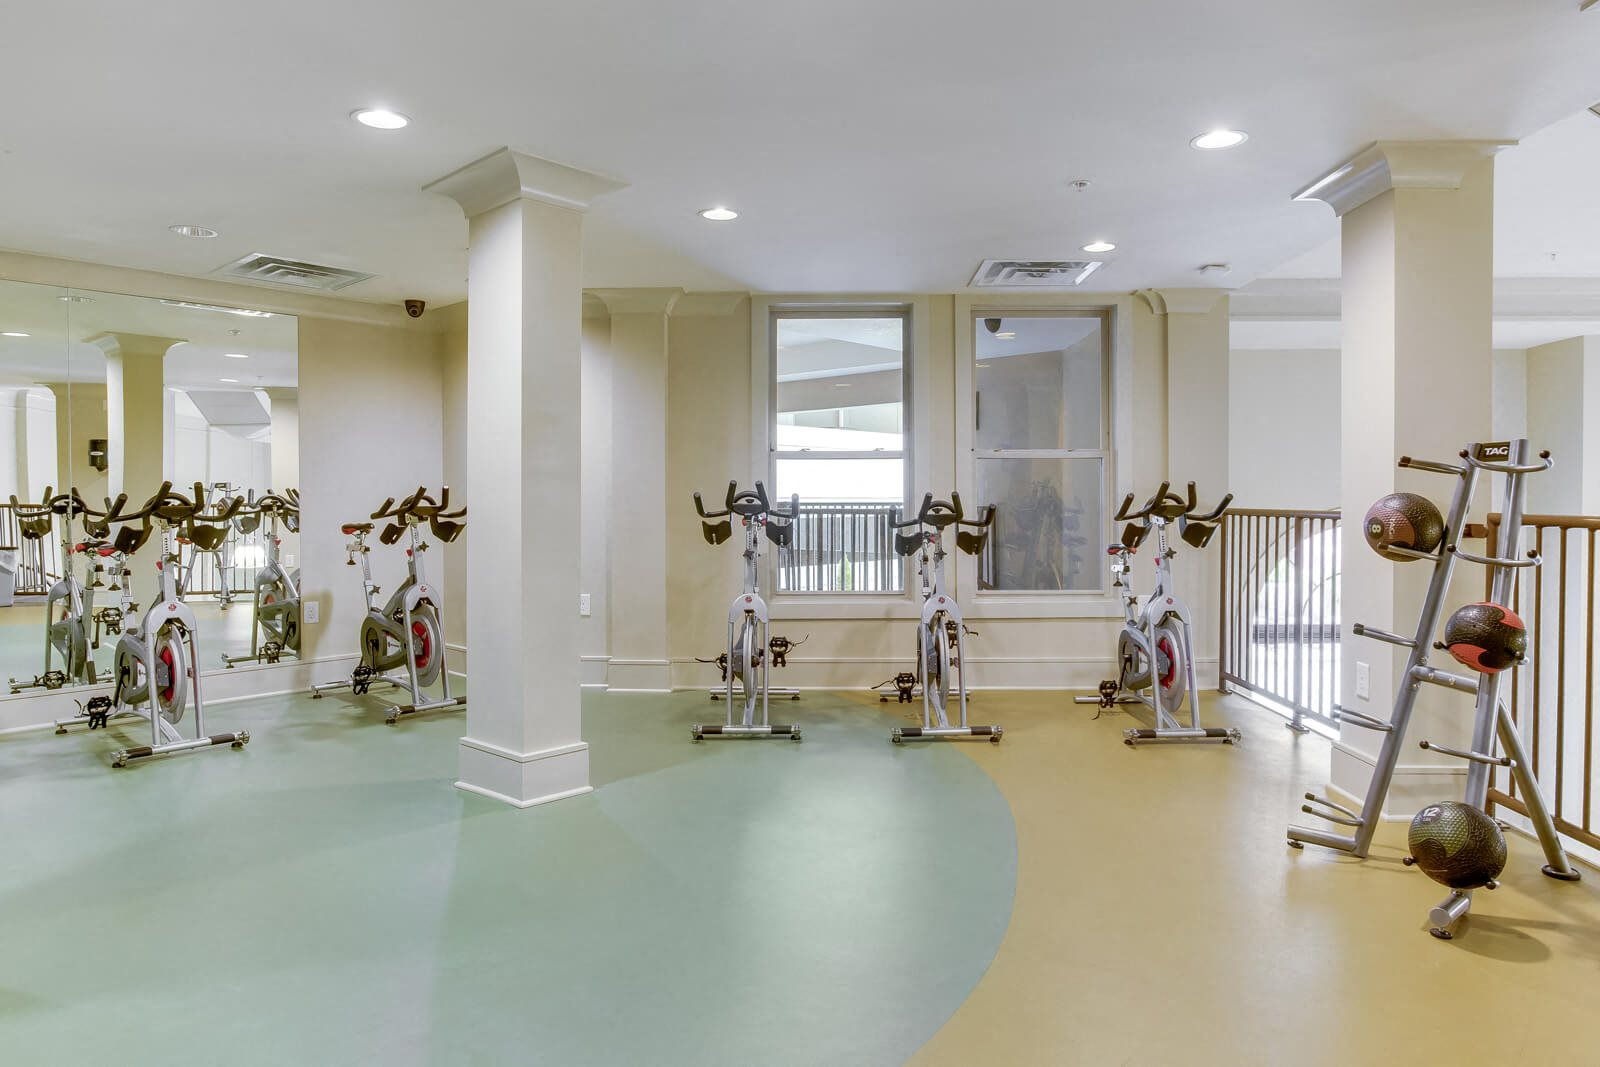 Peloton Spin Bikes for On-Demand Fitness Classes at Windsor at Glenridge, 5610 Glenridge Drive, GA